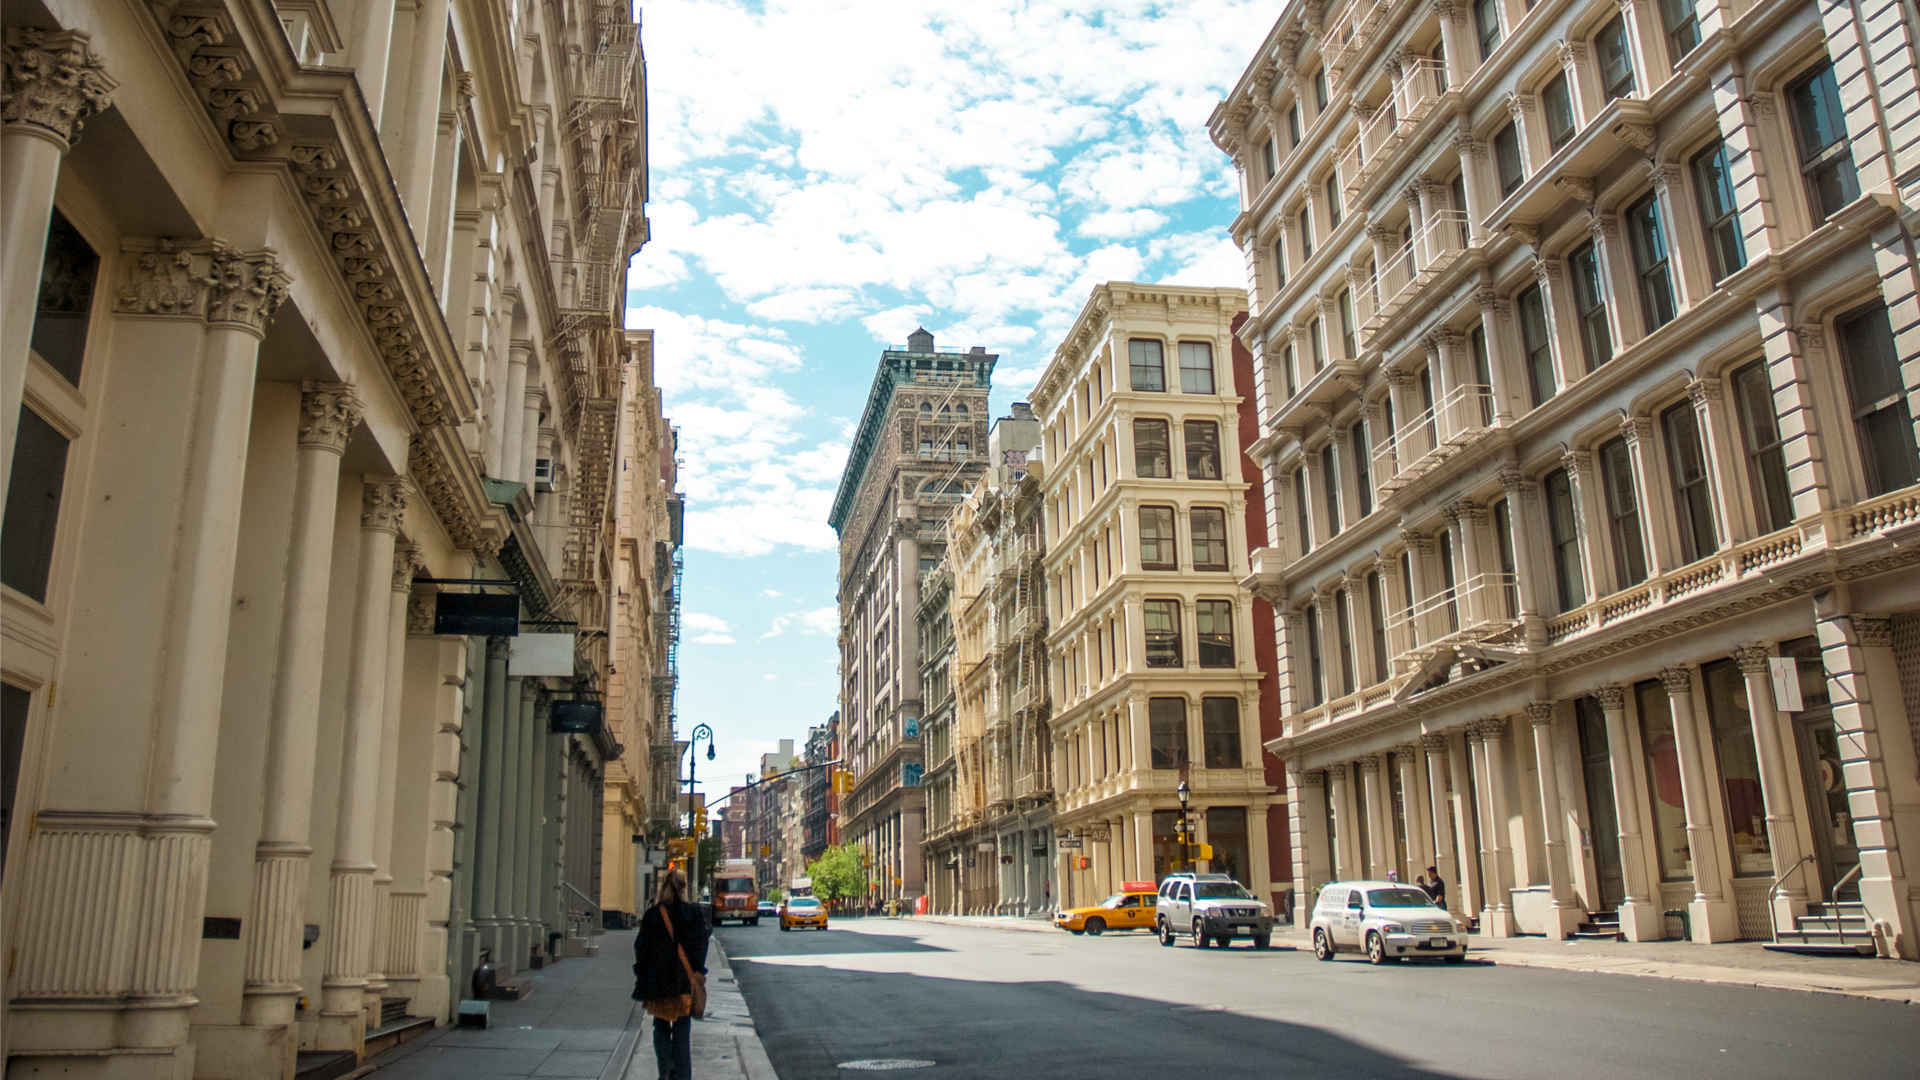 Panorama with historic cast-iron buildings on Soho, New York street